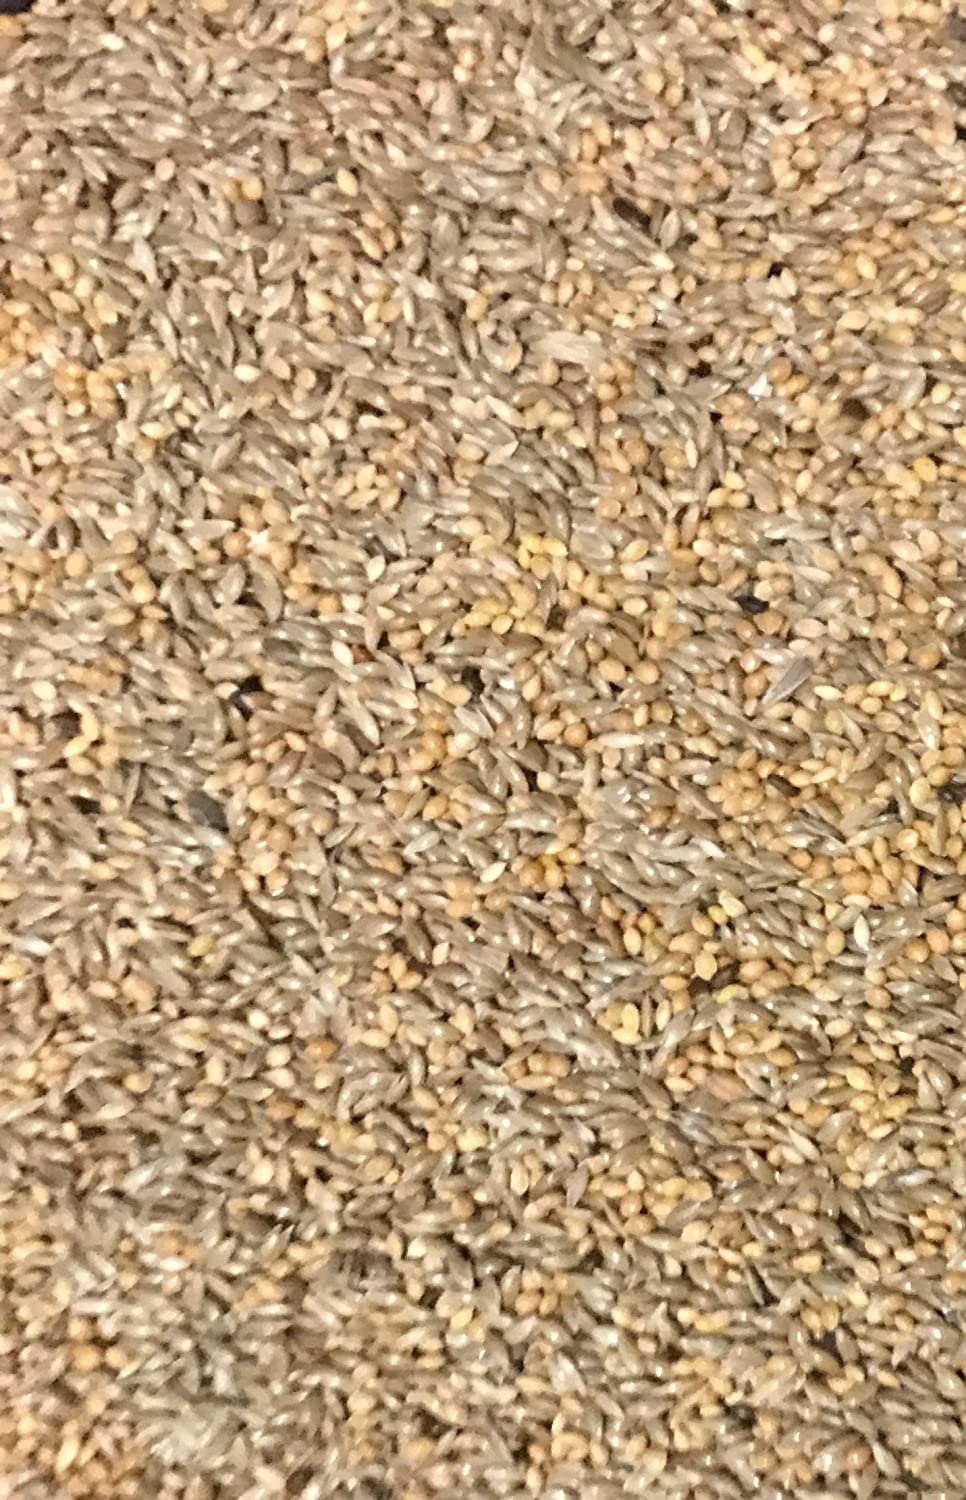 MALTBY'S STORES 10KG 50/50 MIXED BUDGIE SEED MALTBY' S CORN STORES